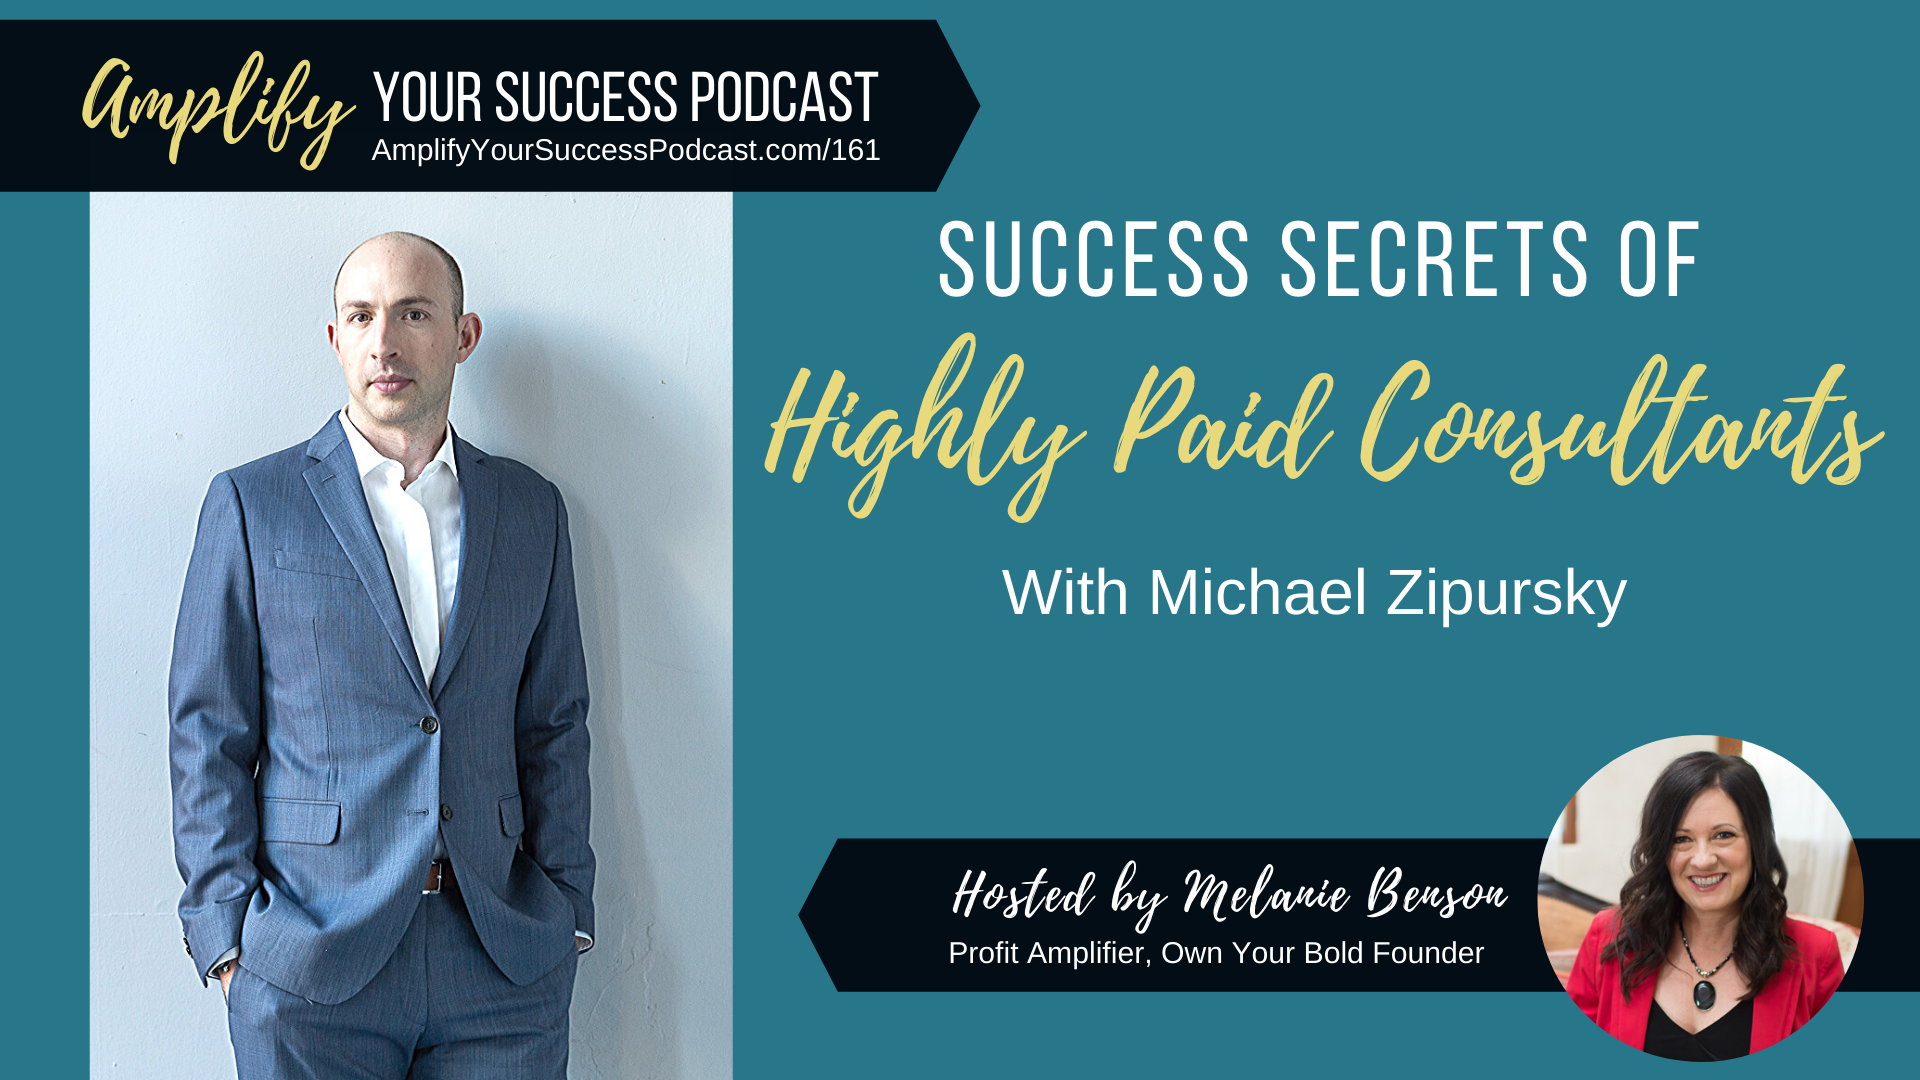 Success Secrets of Highly Paid Consultants with Michael Zipursky